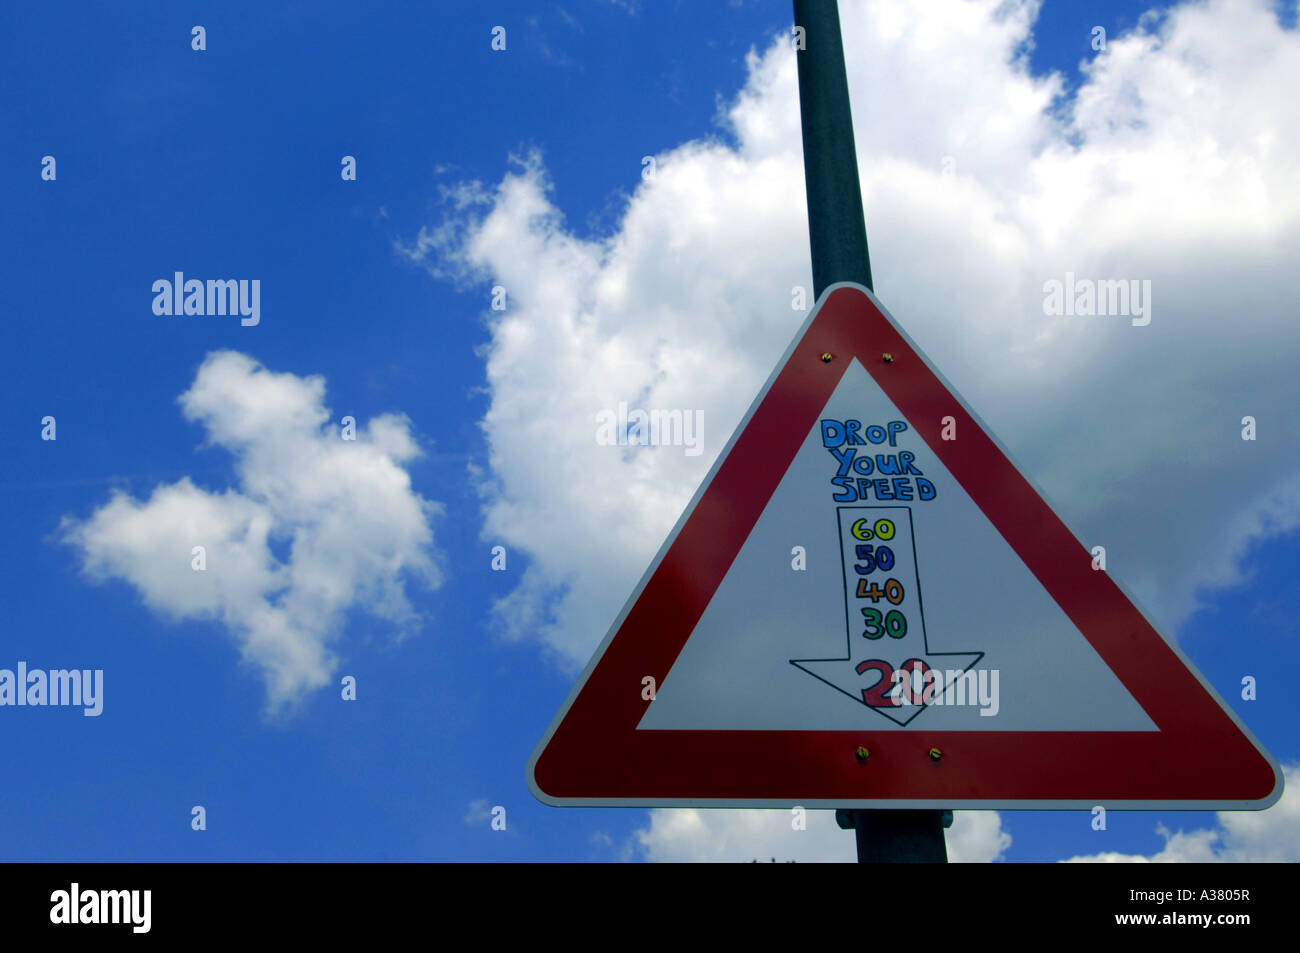 Is Blue A Calming Color slow down red triangle road sign traffic calming measures blue sky